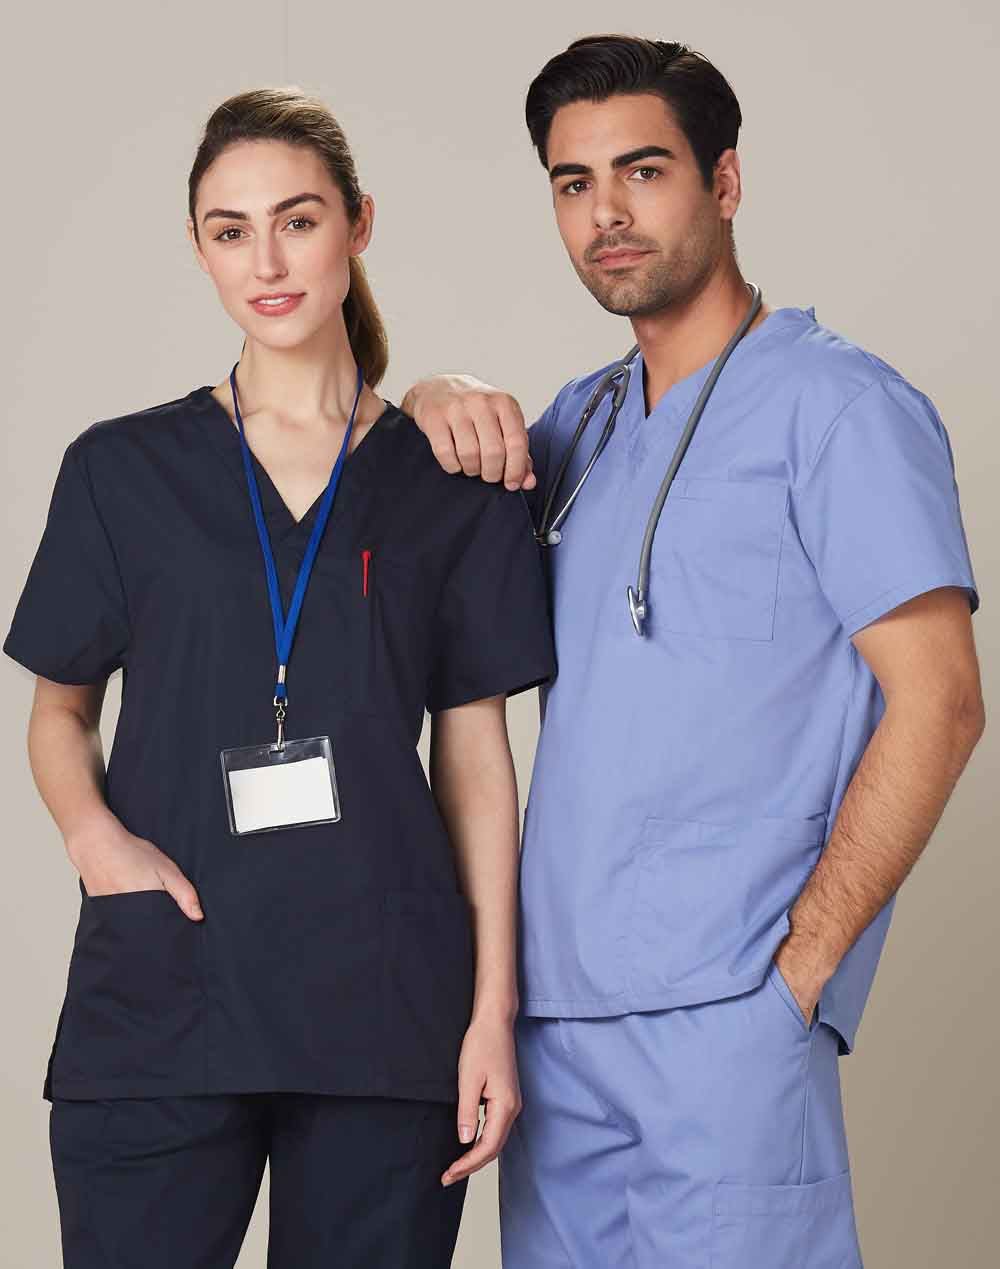 Promotional Unisex Scrubs Short Sleeve Tunic Tops Online in Perth